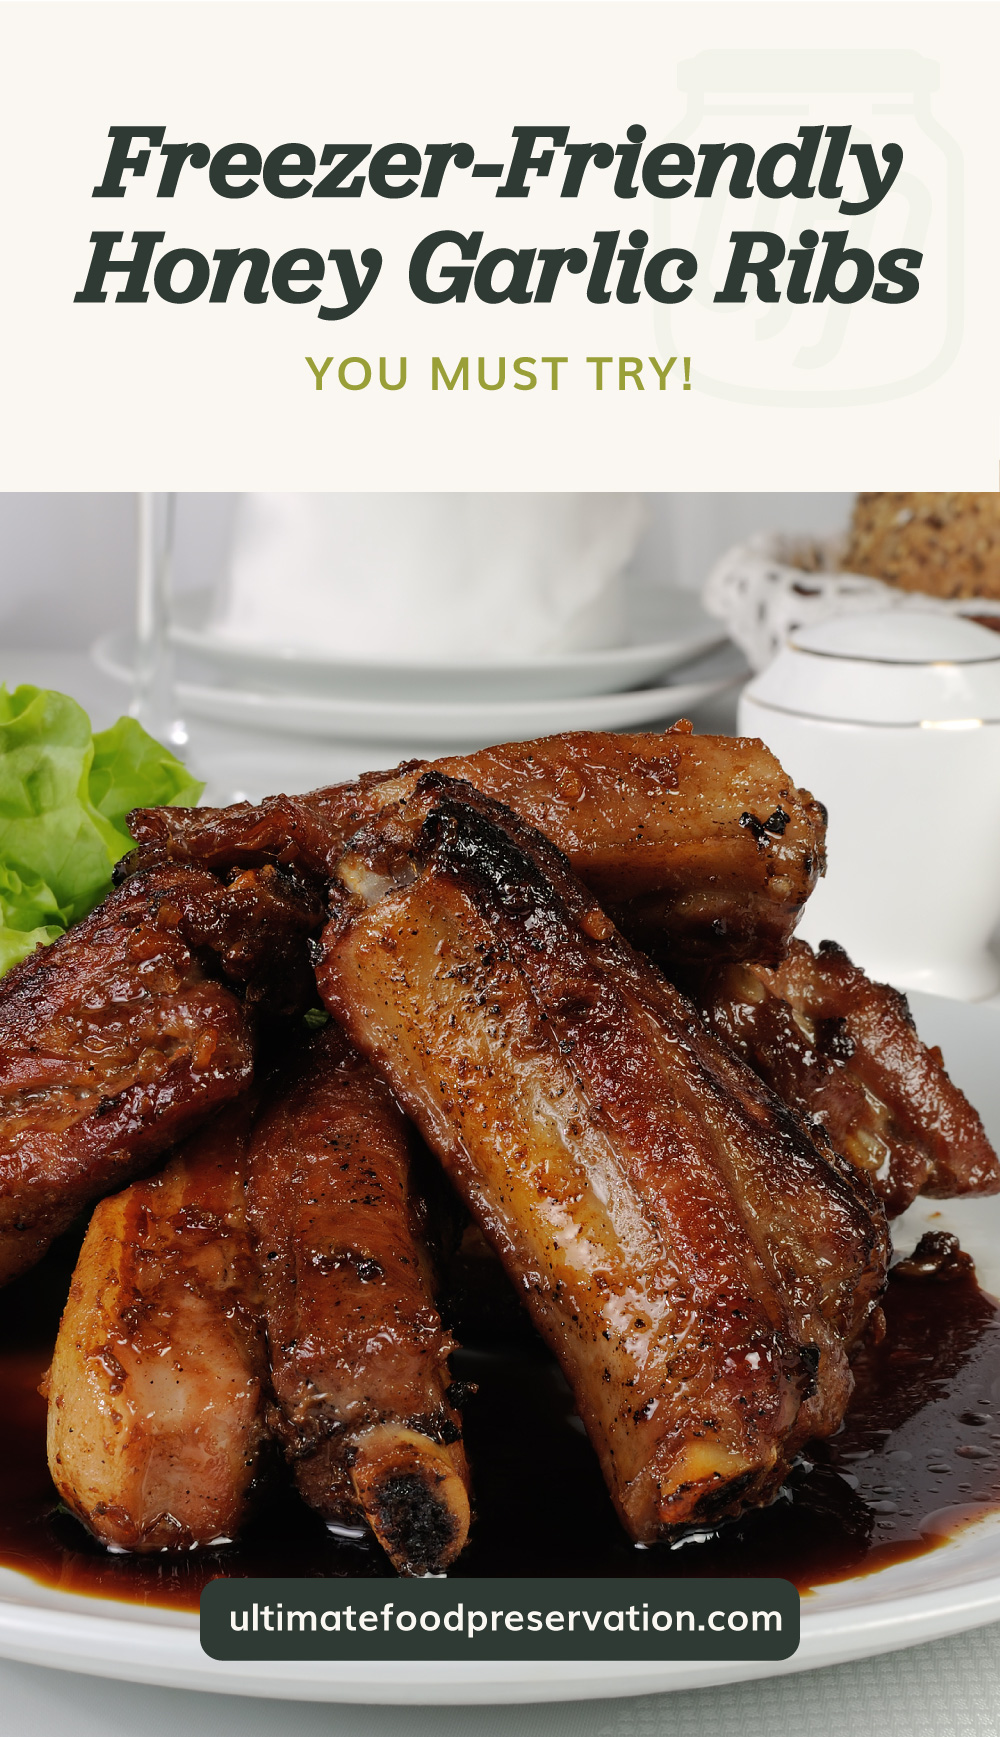 """Text area which says """"Freezer-Friendly Greatest-of-all-Time Honey Garlic Ribs You Must Try!"""" next to a close-up view pork ribs with honey and garlic sauce followed by another text area which says ultimatefoodpreservation.com"""